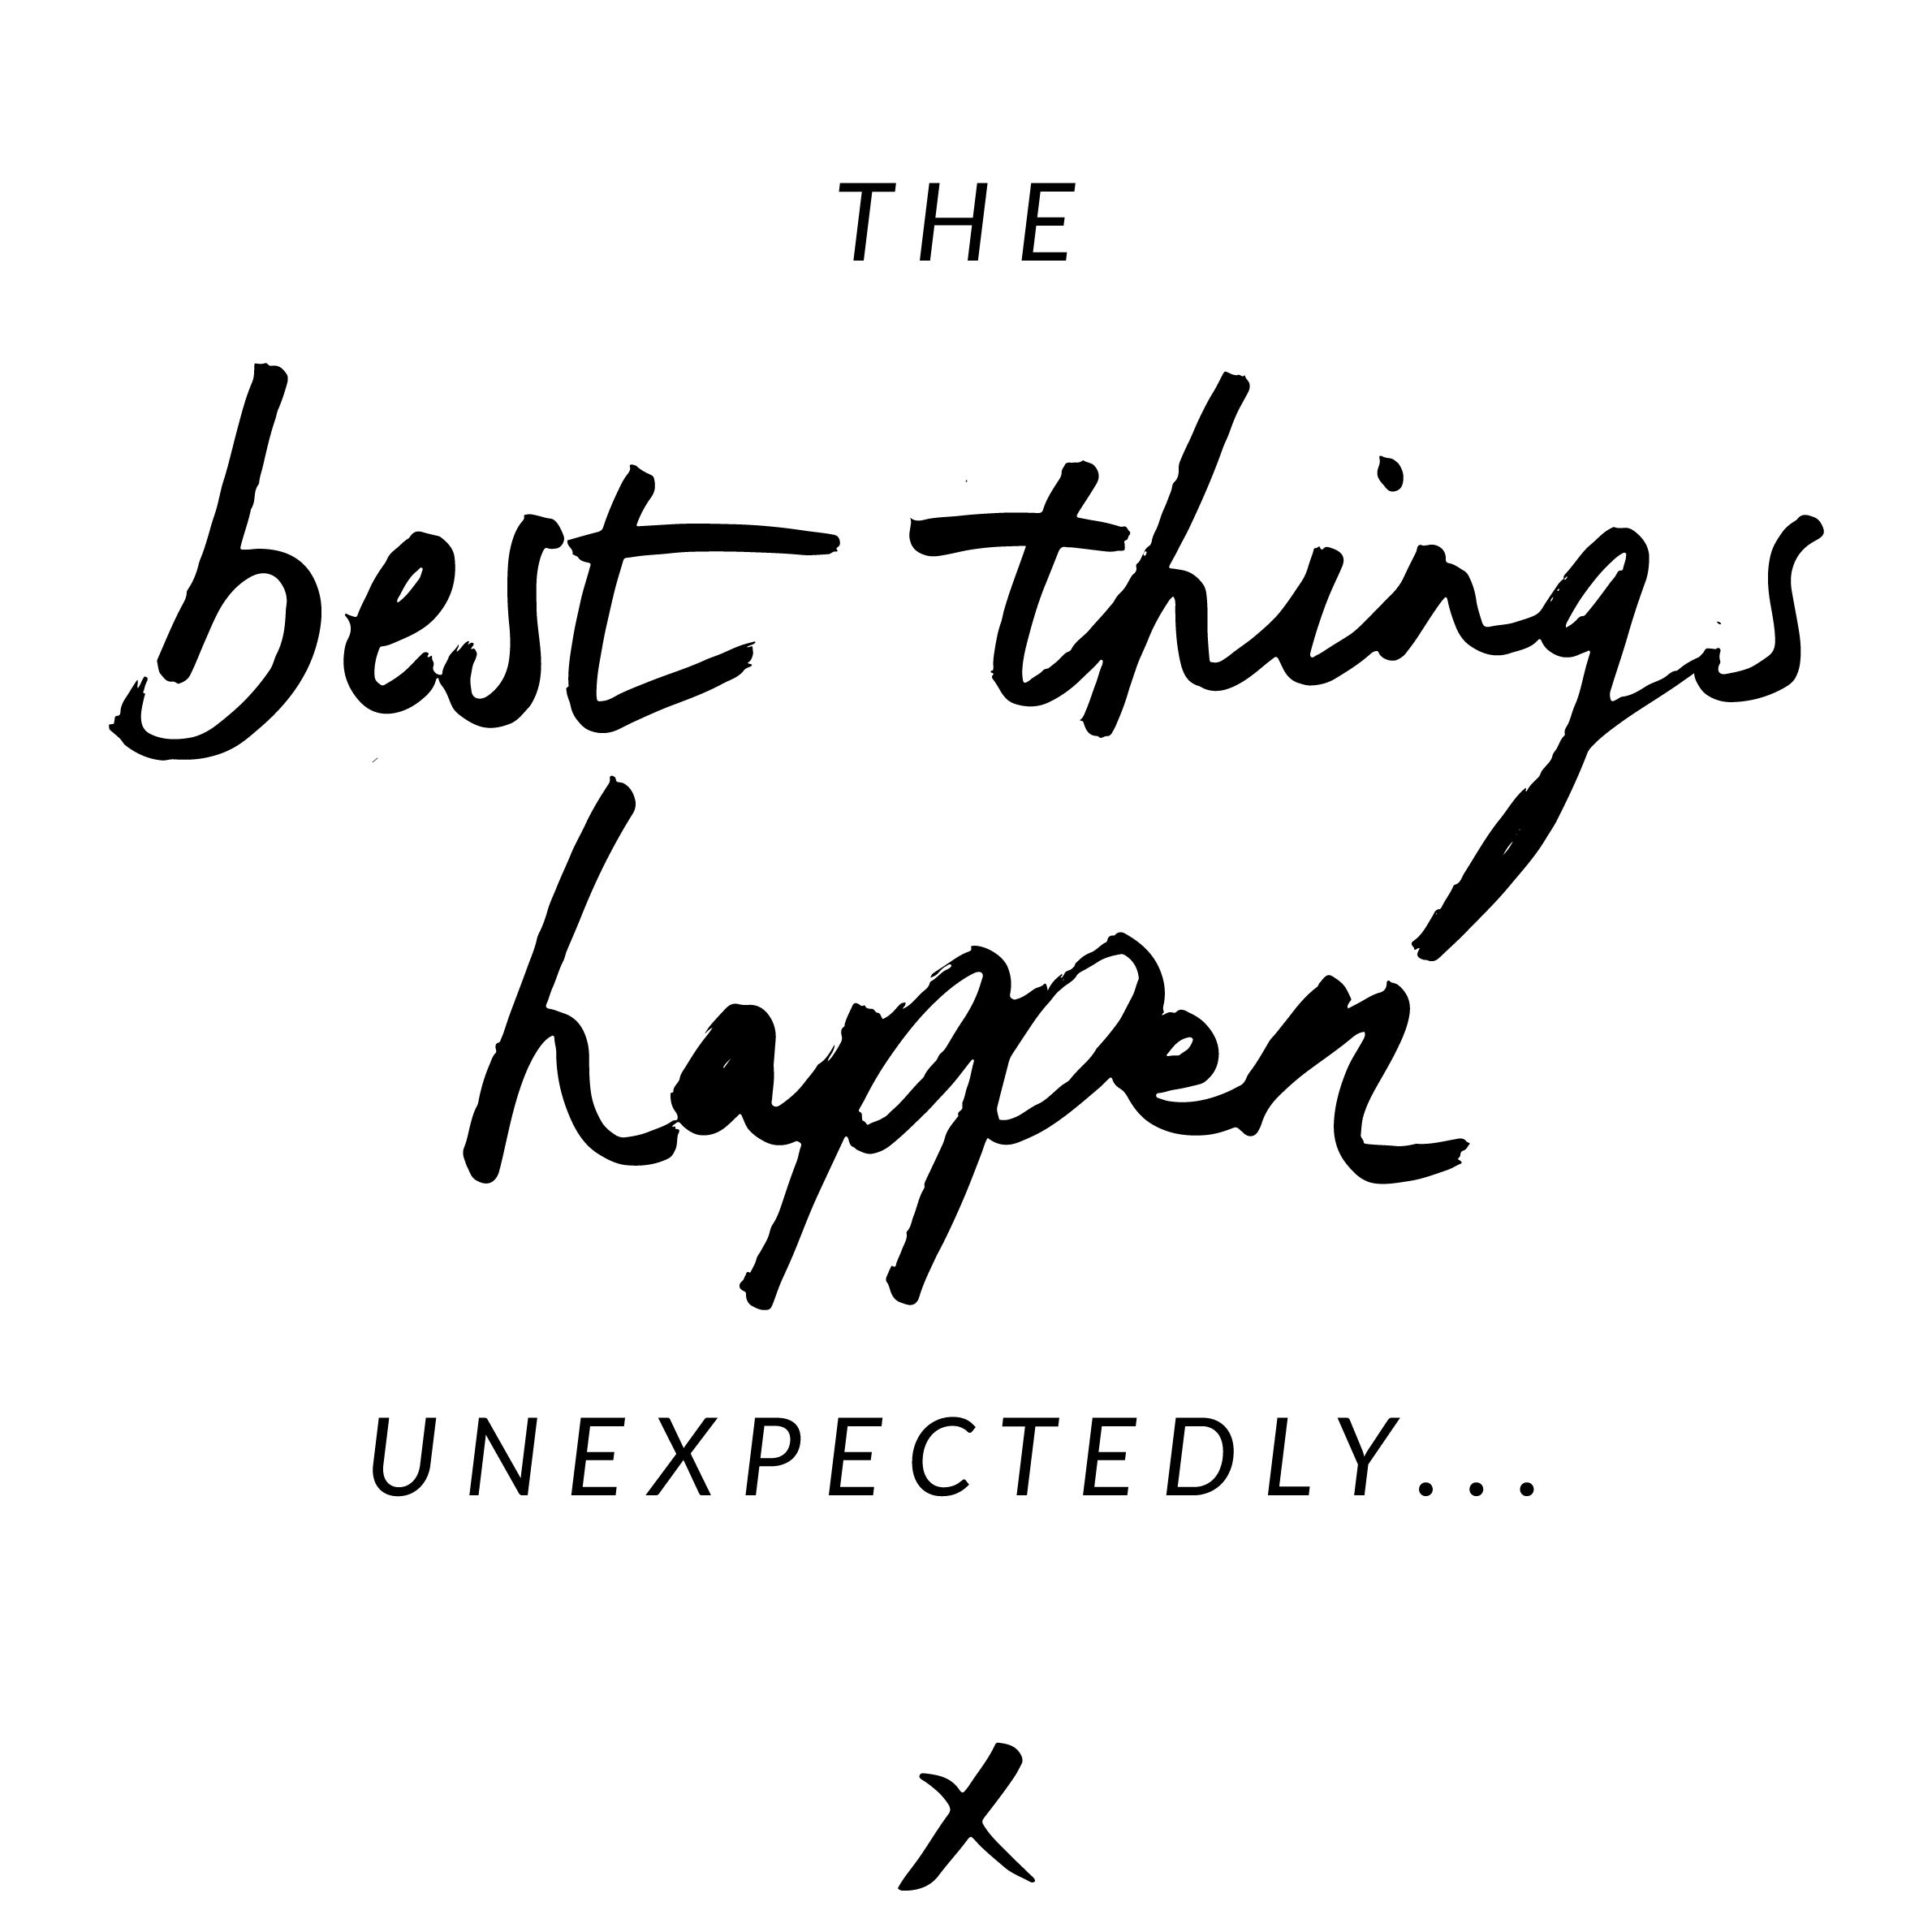 When Things Happen Unexpectedly Quotes: The Best Things Happen Unexpectedly... #jotitdown